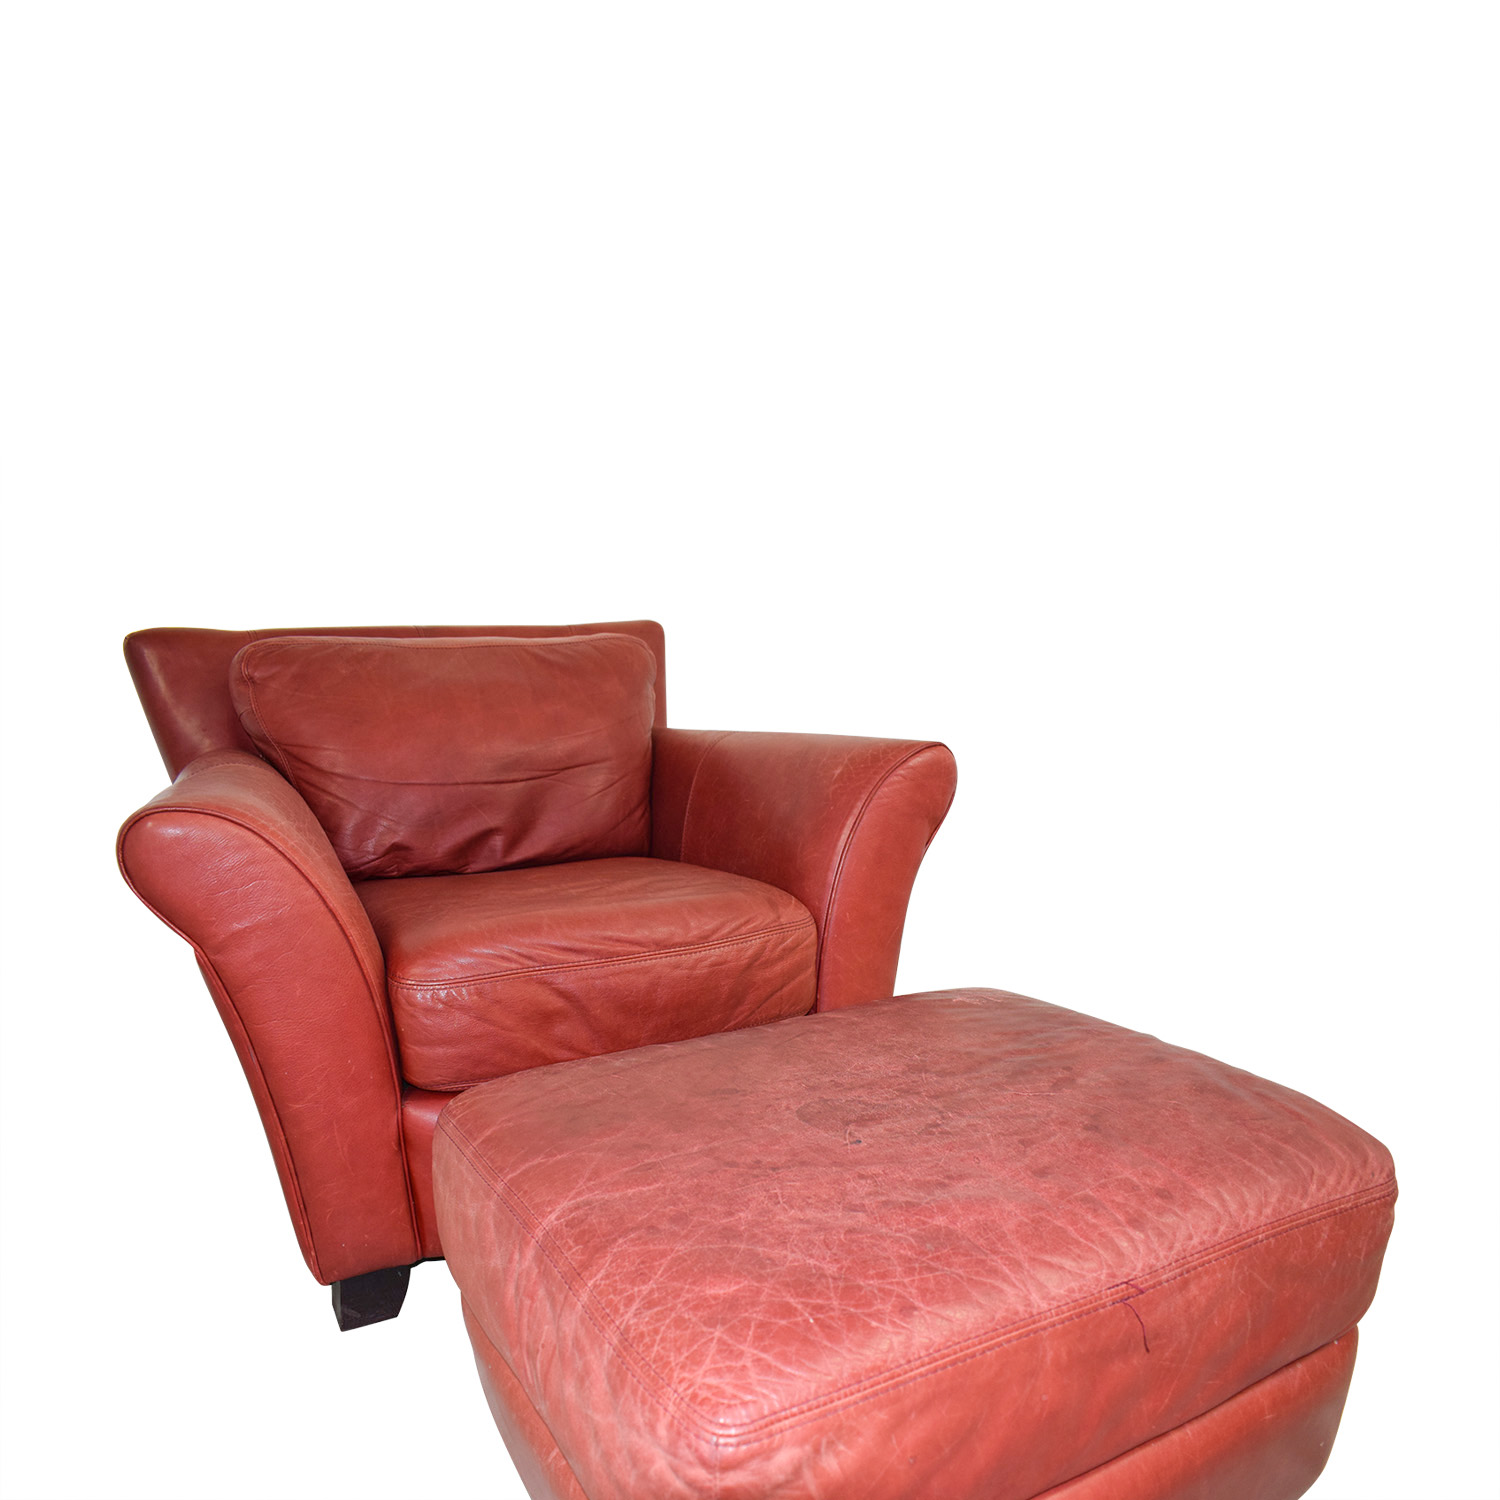 red leather chair and ottoman intex inflatable pull out twin bed 73 off palliser